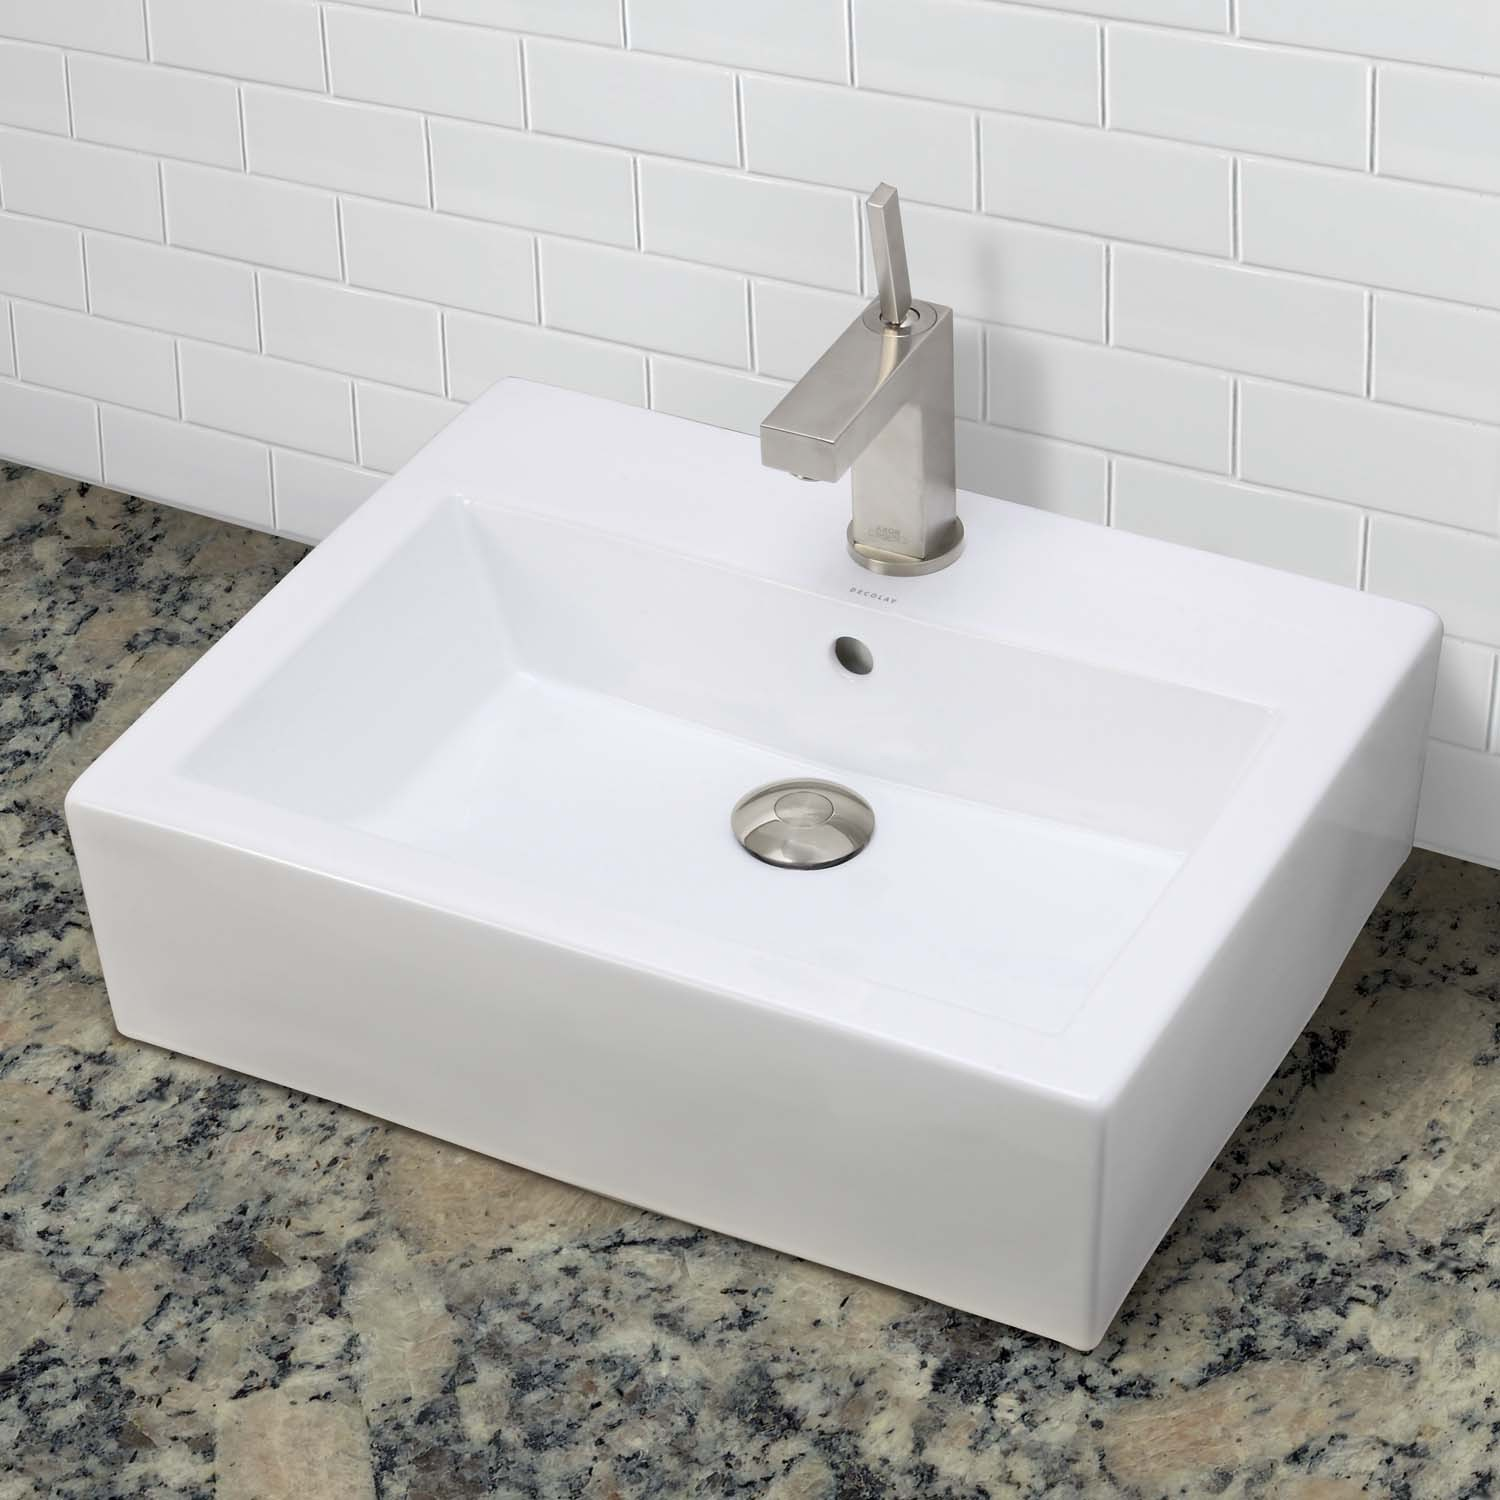 decolav bluebell 1417 1 cwh rectangular above counter vitreous china bathroom sink. Black Bedroom Furniture Sets. Home Design Ideas